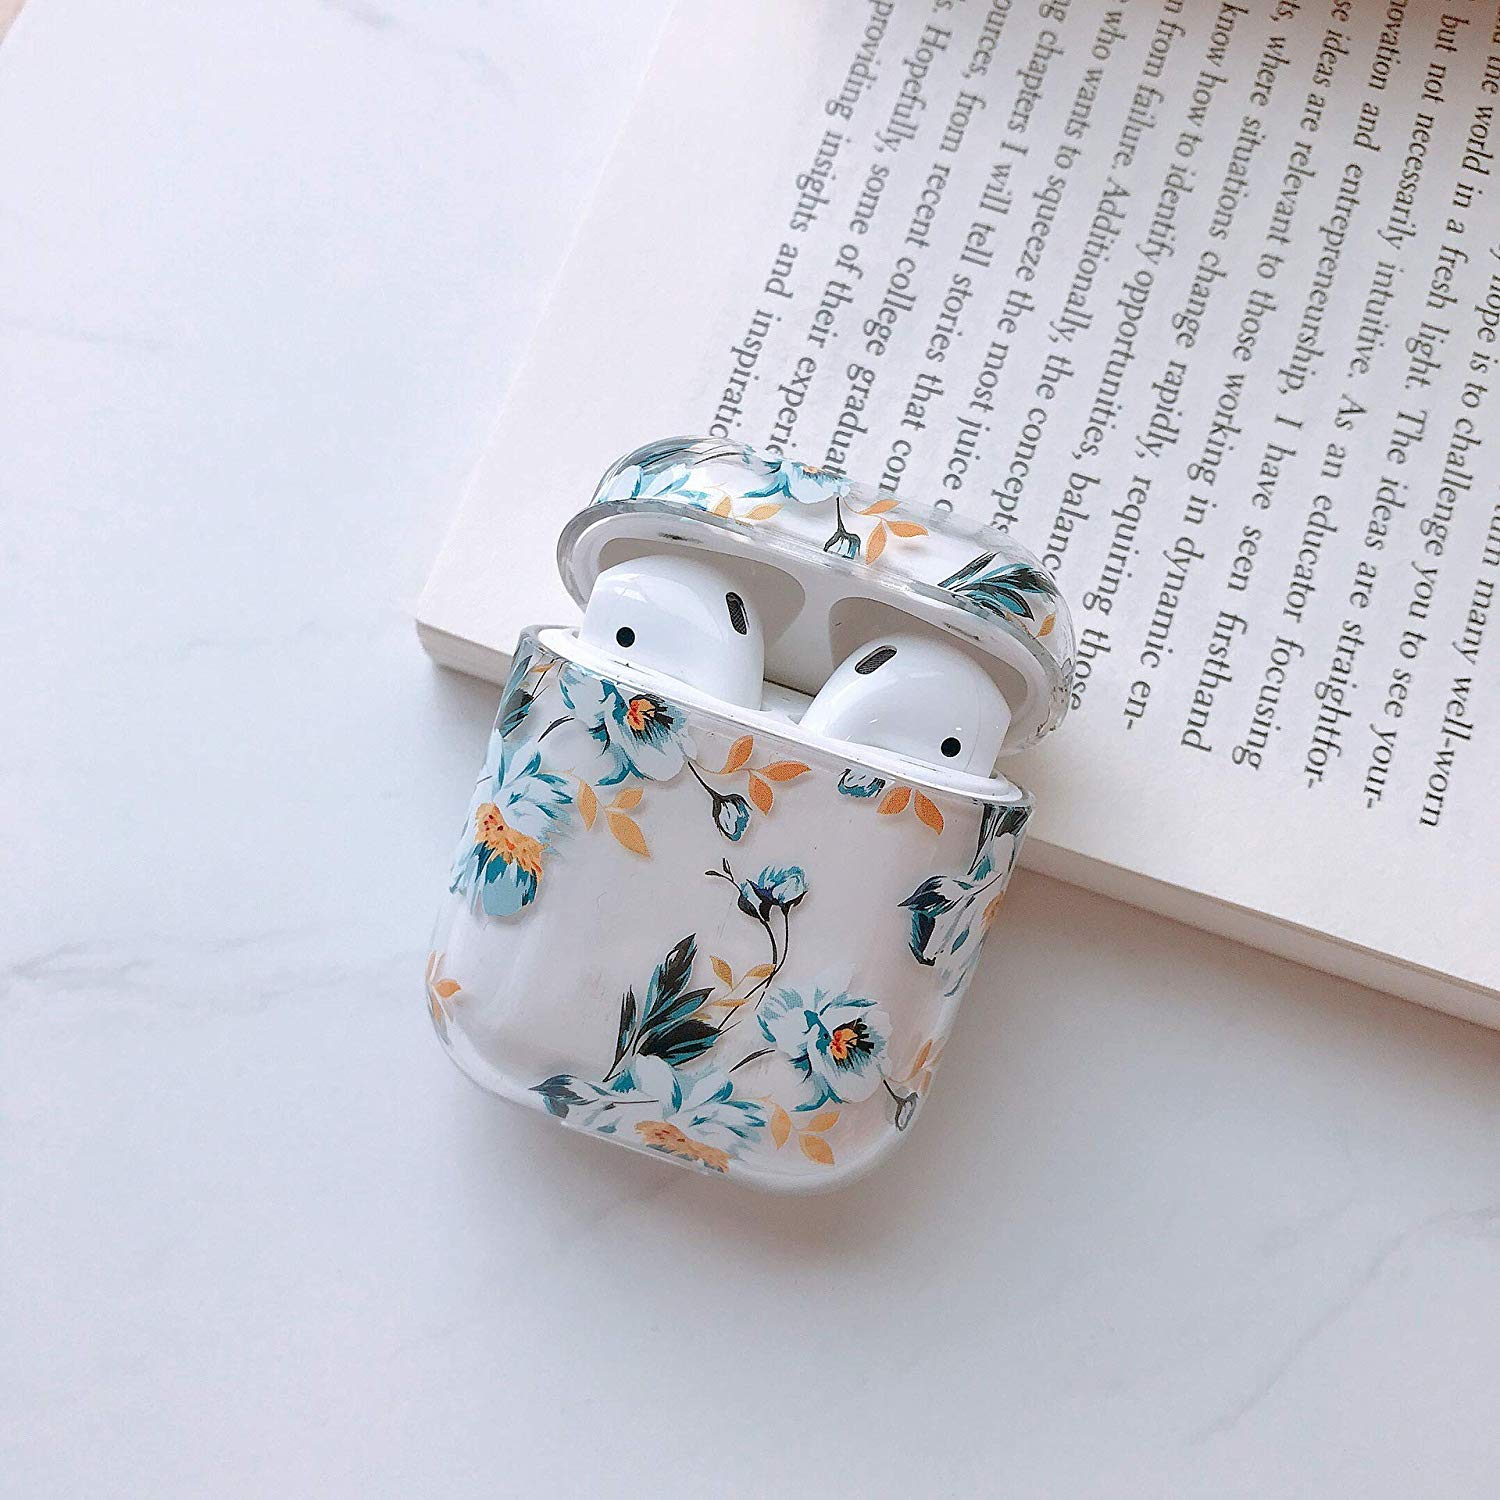 Best Airpods Cases In 2021 Cute Practical And Fun Covers In The Uk